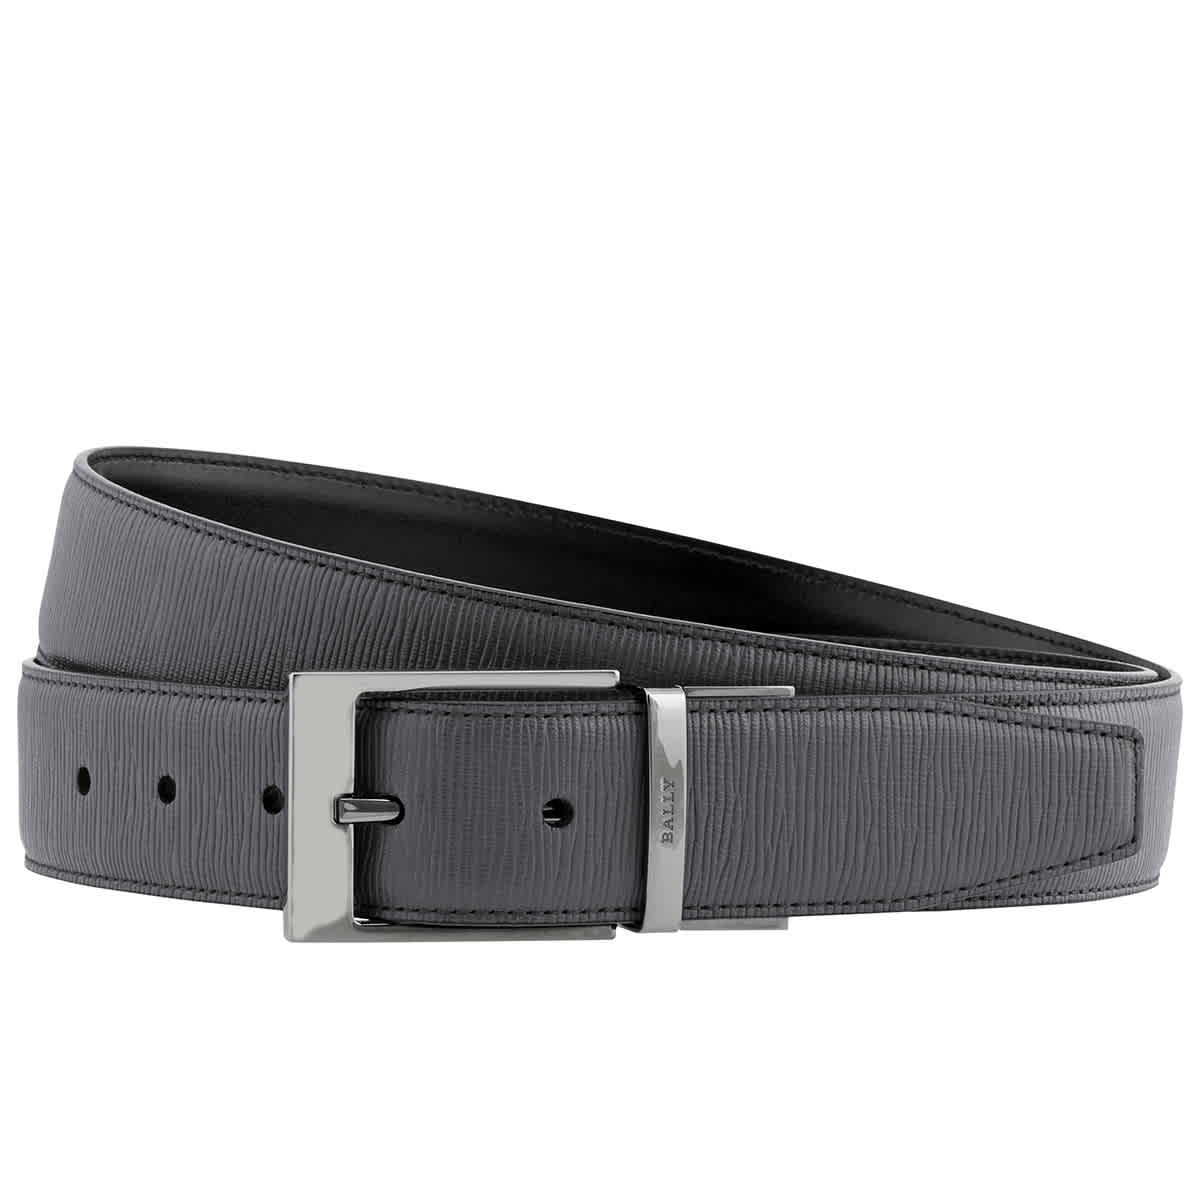 Versace Collection Men/'s Teal Leather Belt W// Silver Metal Buckle 115cm NEW